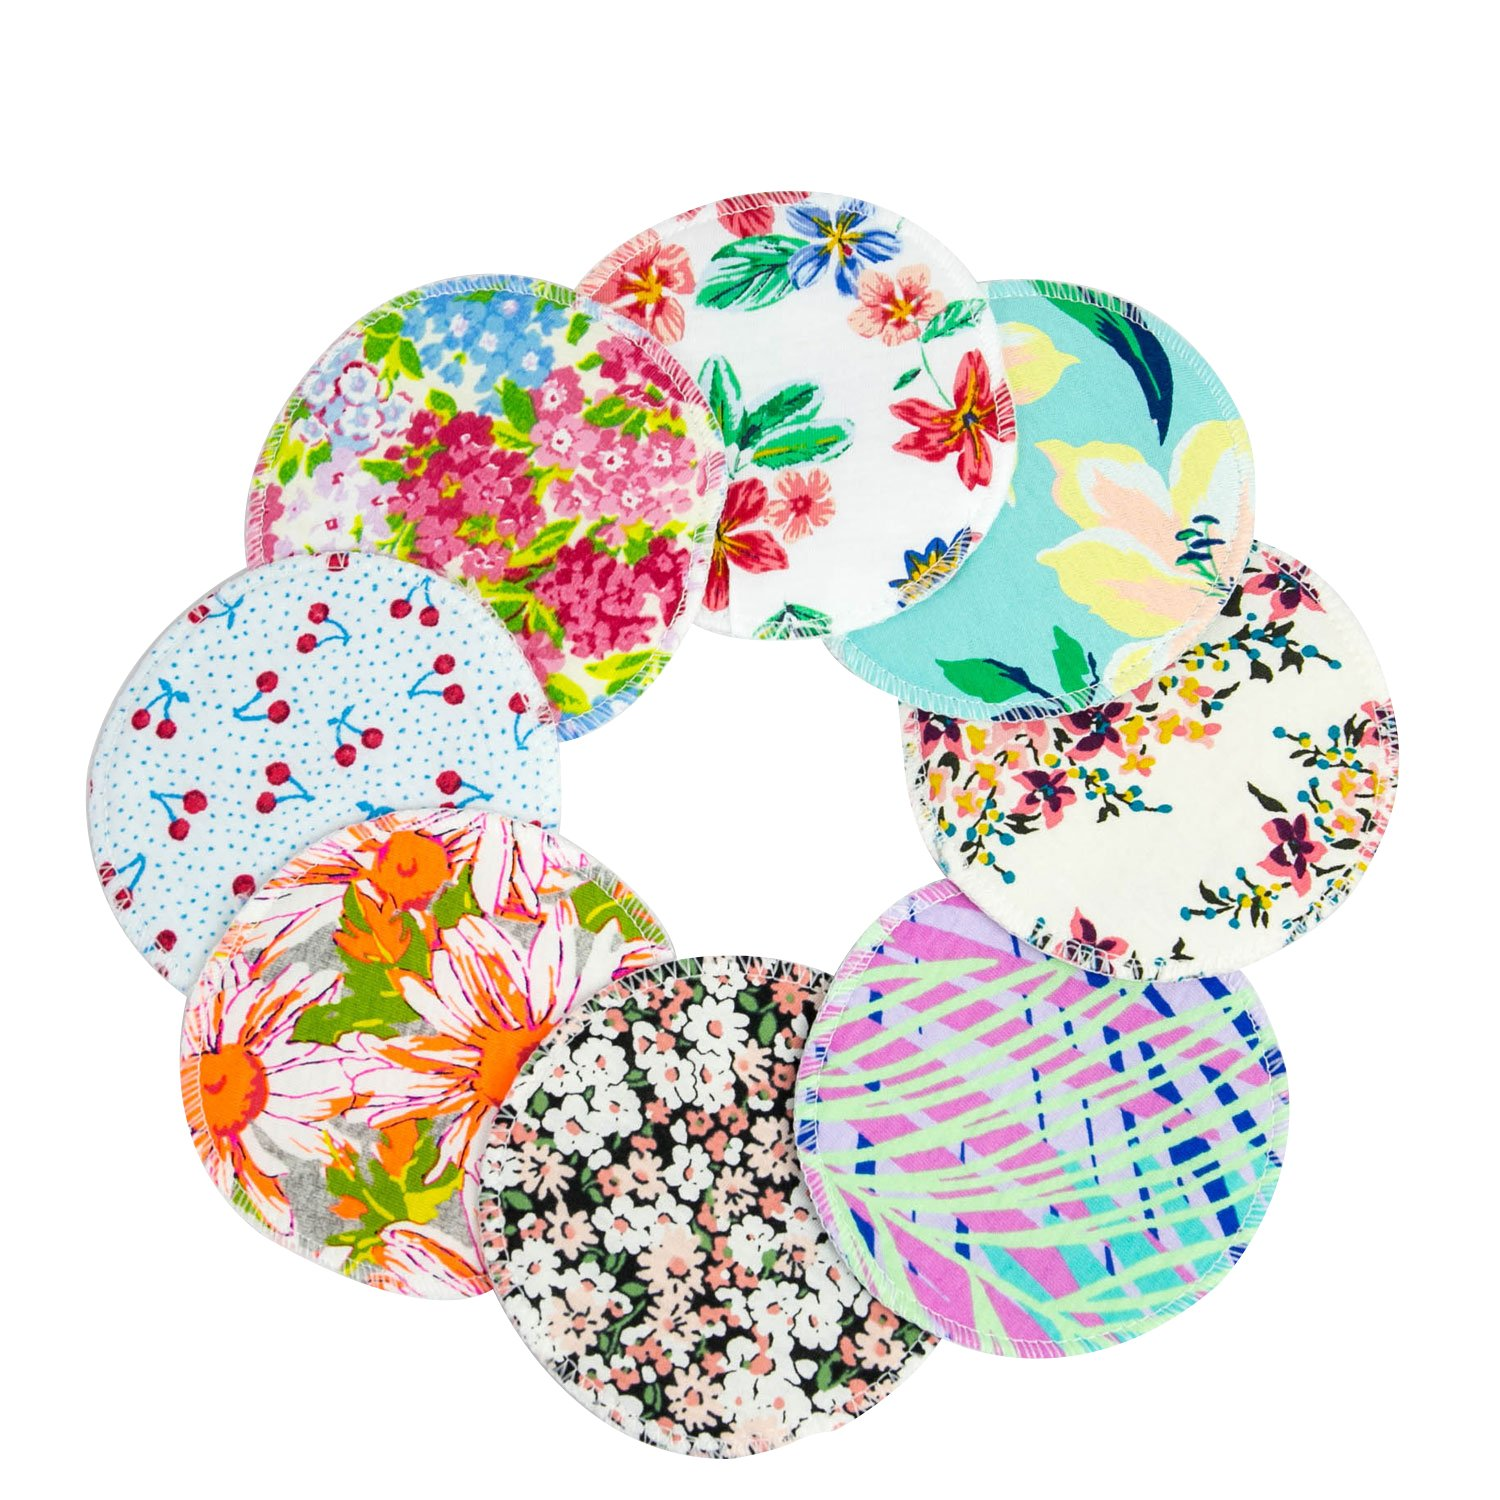 8 Pack Liyoung Reusable Washable Nursing Breast Pads, Cotton Nursing Covers in Floral Print Vintage Style, Super Soft & Absorbent, Cute Baby Shower Gift (8 pieces)